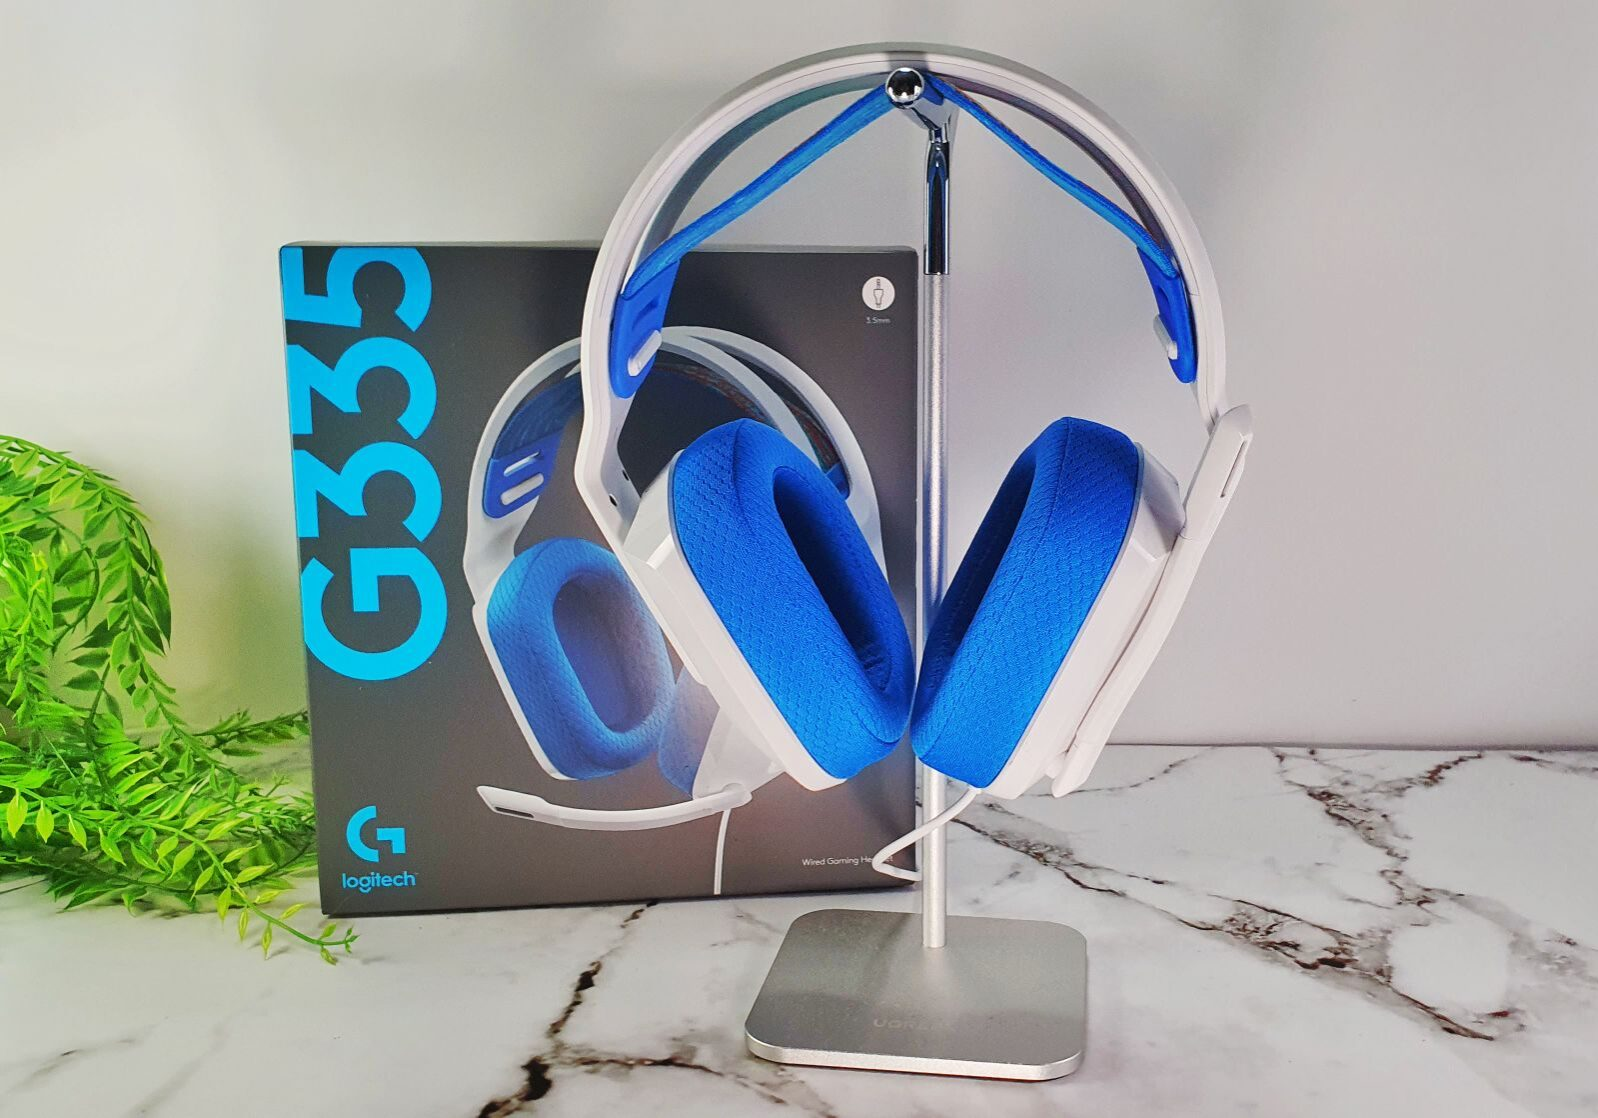 Logitech G335 wired gaming headset image with box